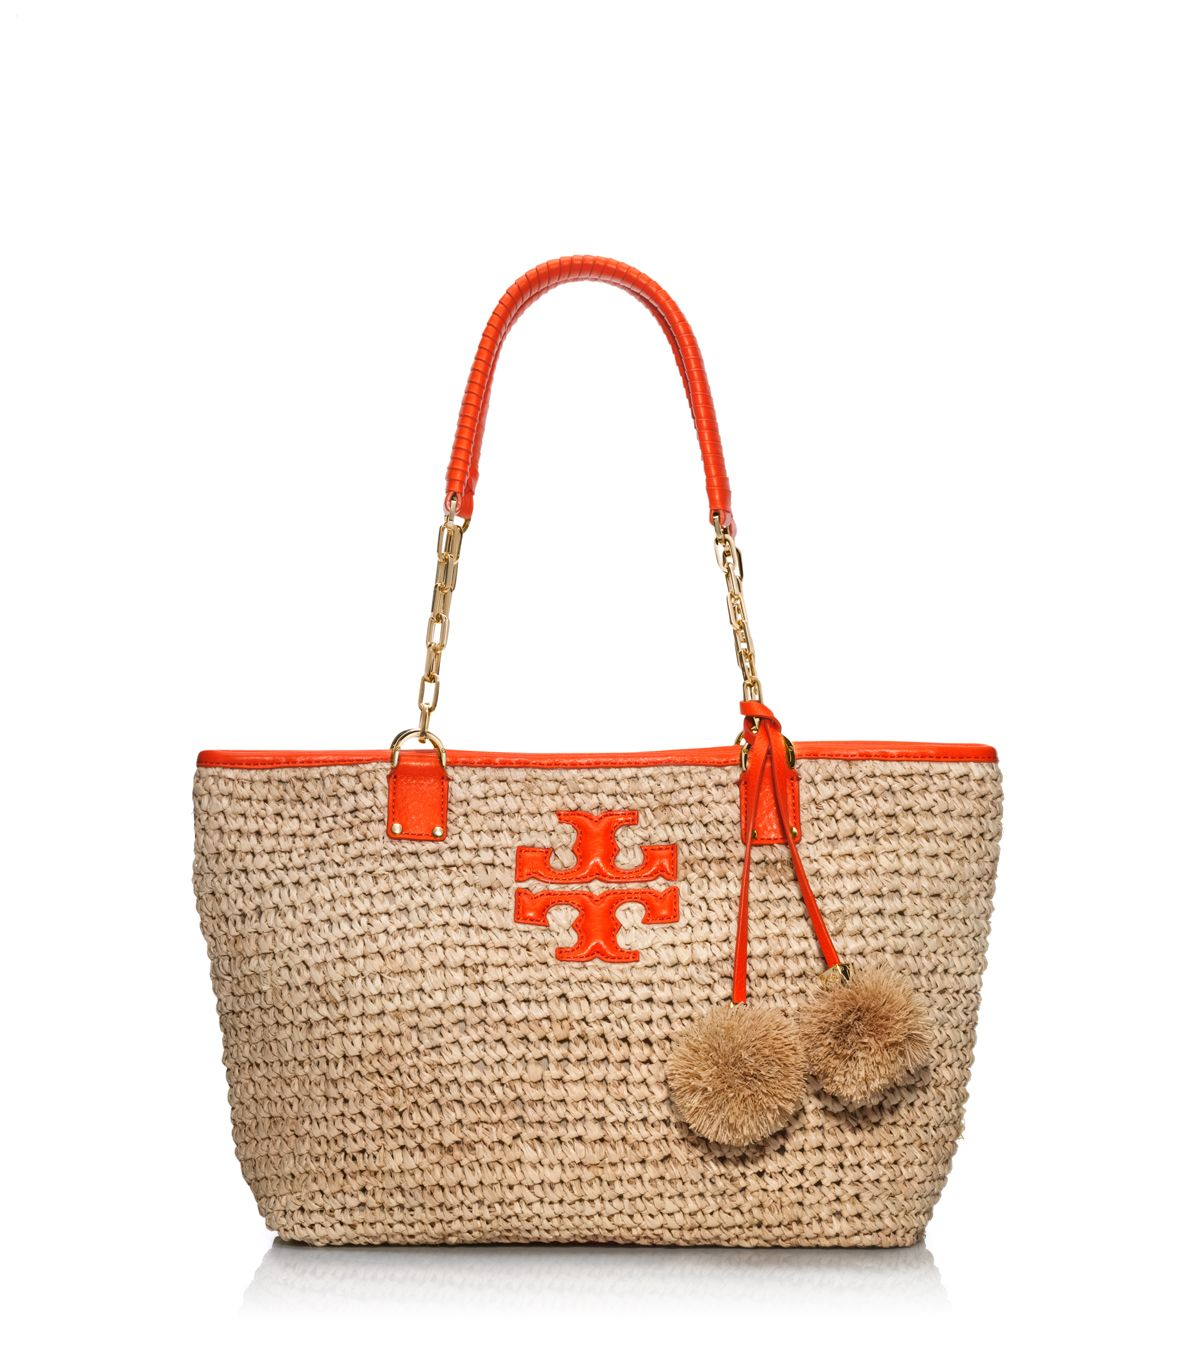 81956f03d3c Lyst - Tory Burch Thea Straw Small Tote in Natural